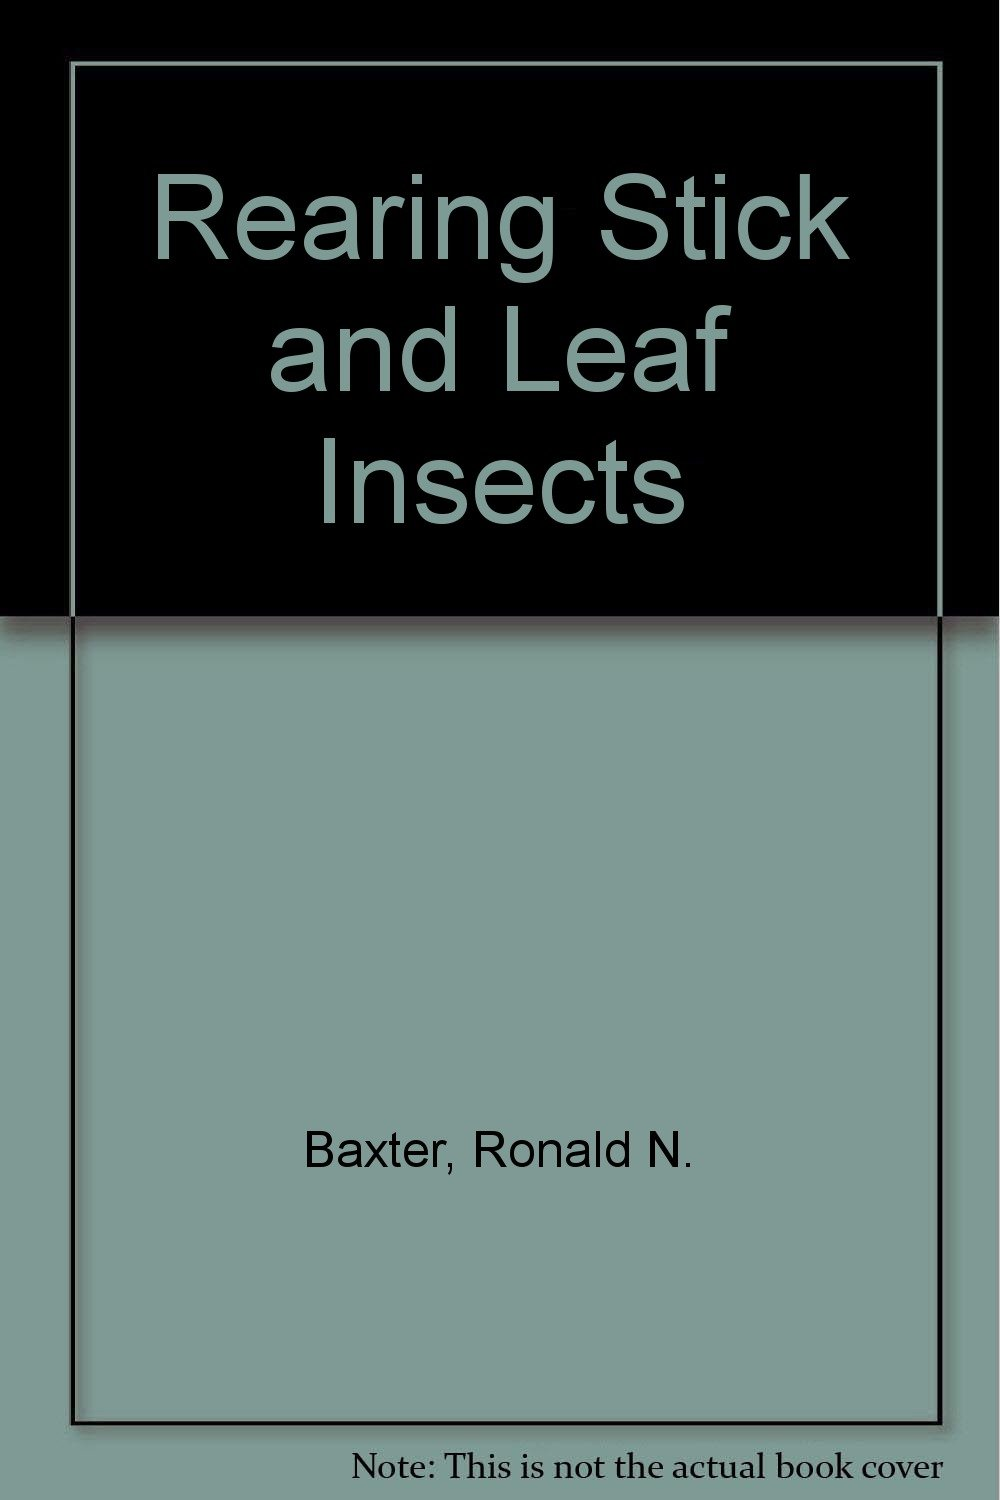 Rearing Stick and Leaf Insects